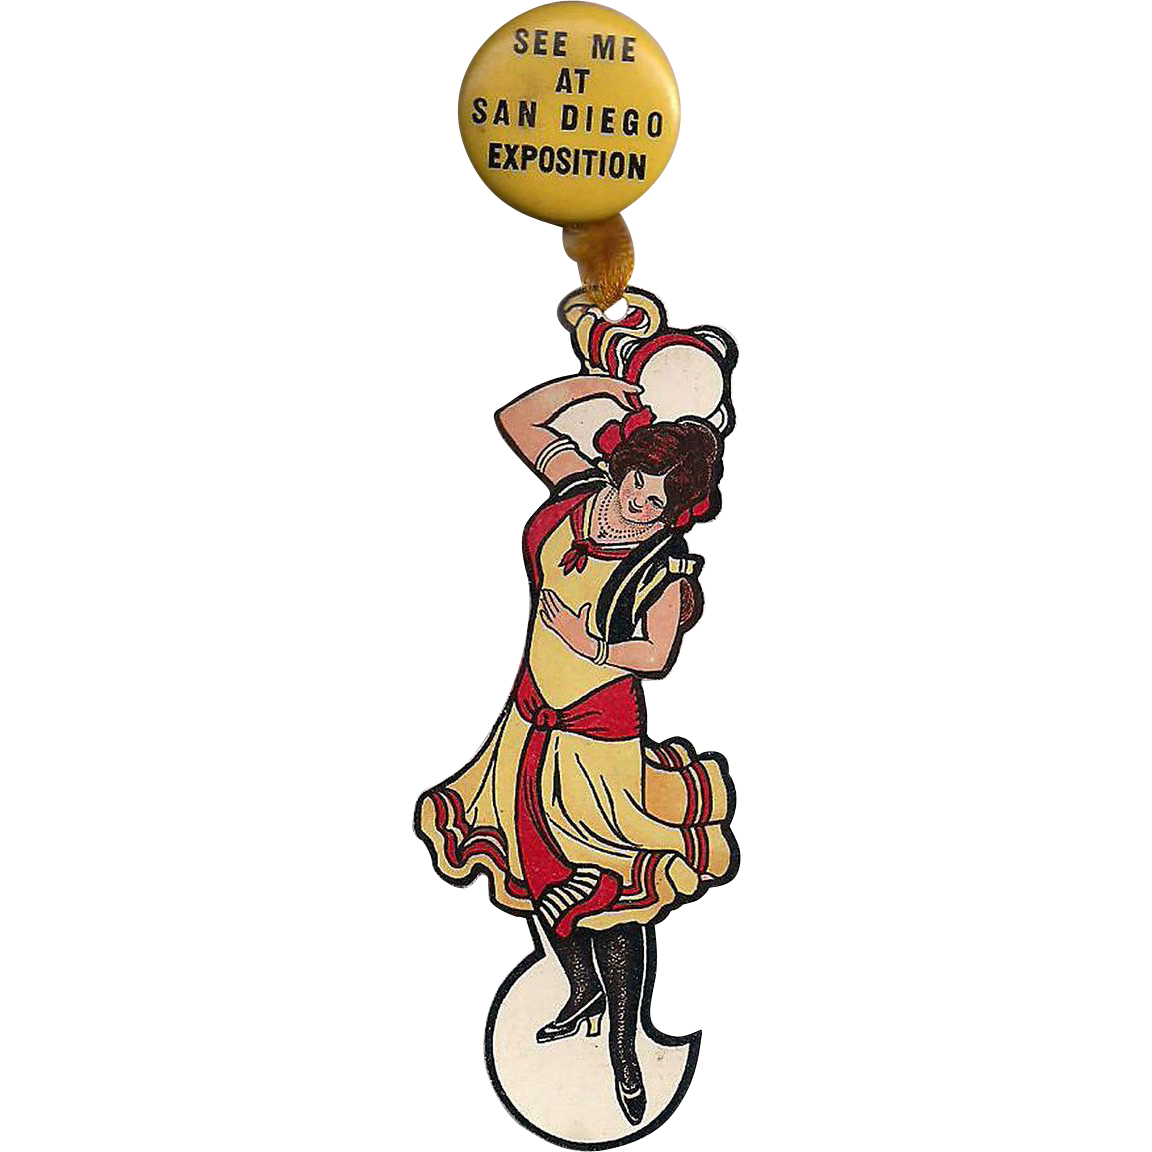 San Diego Exposition 1935 'See Me . . .' Pinback with Celluloid Lady